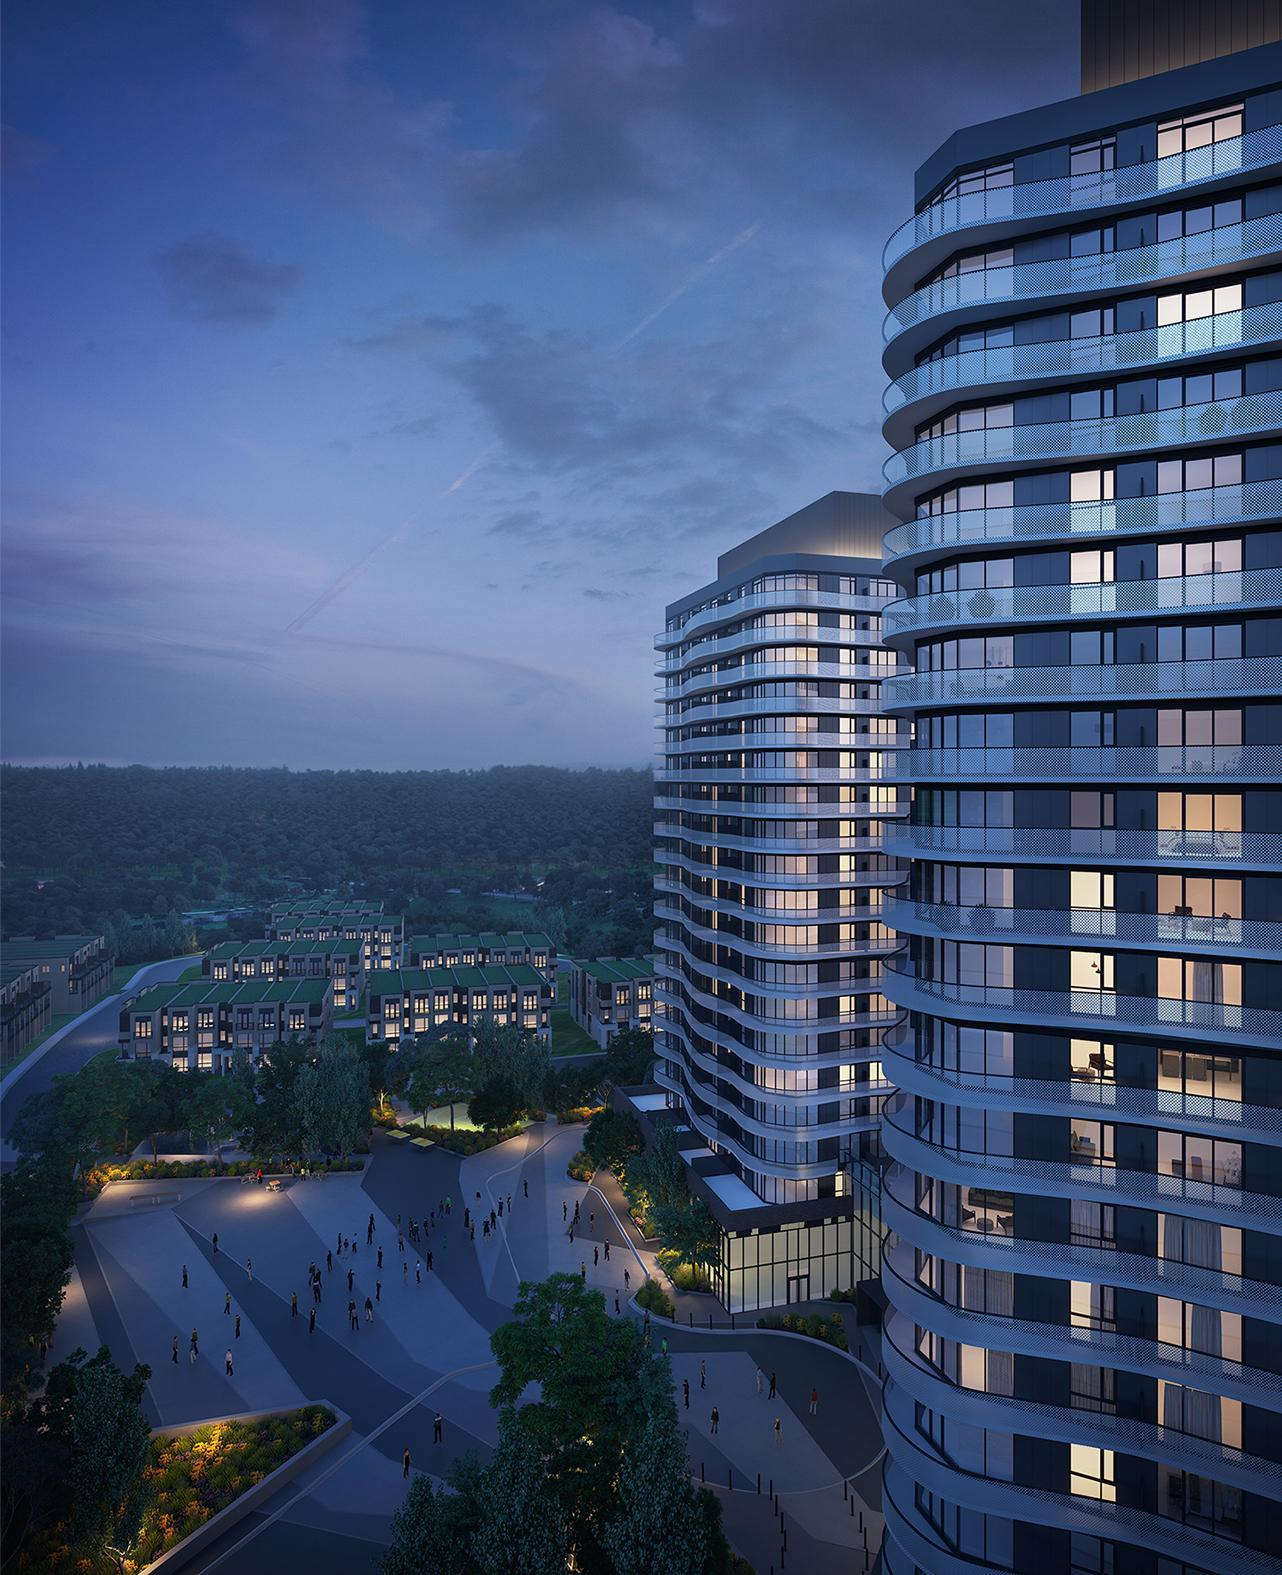 Two Garage Condo Developments Planned For Martin City Area: Primont Homes Proposes Condo Towers, Townhouses In